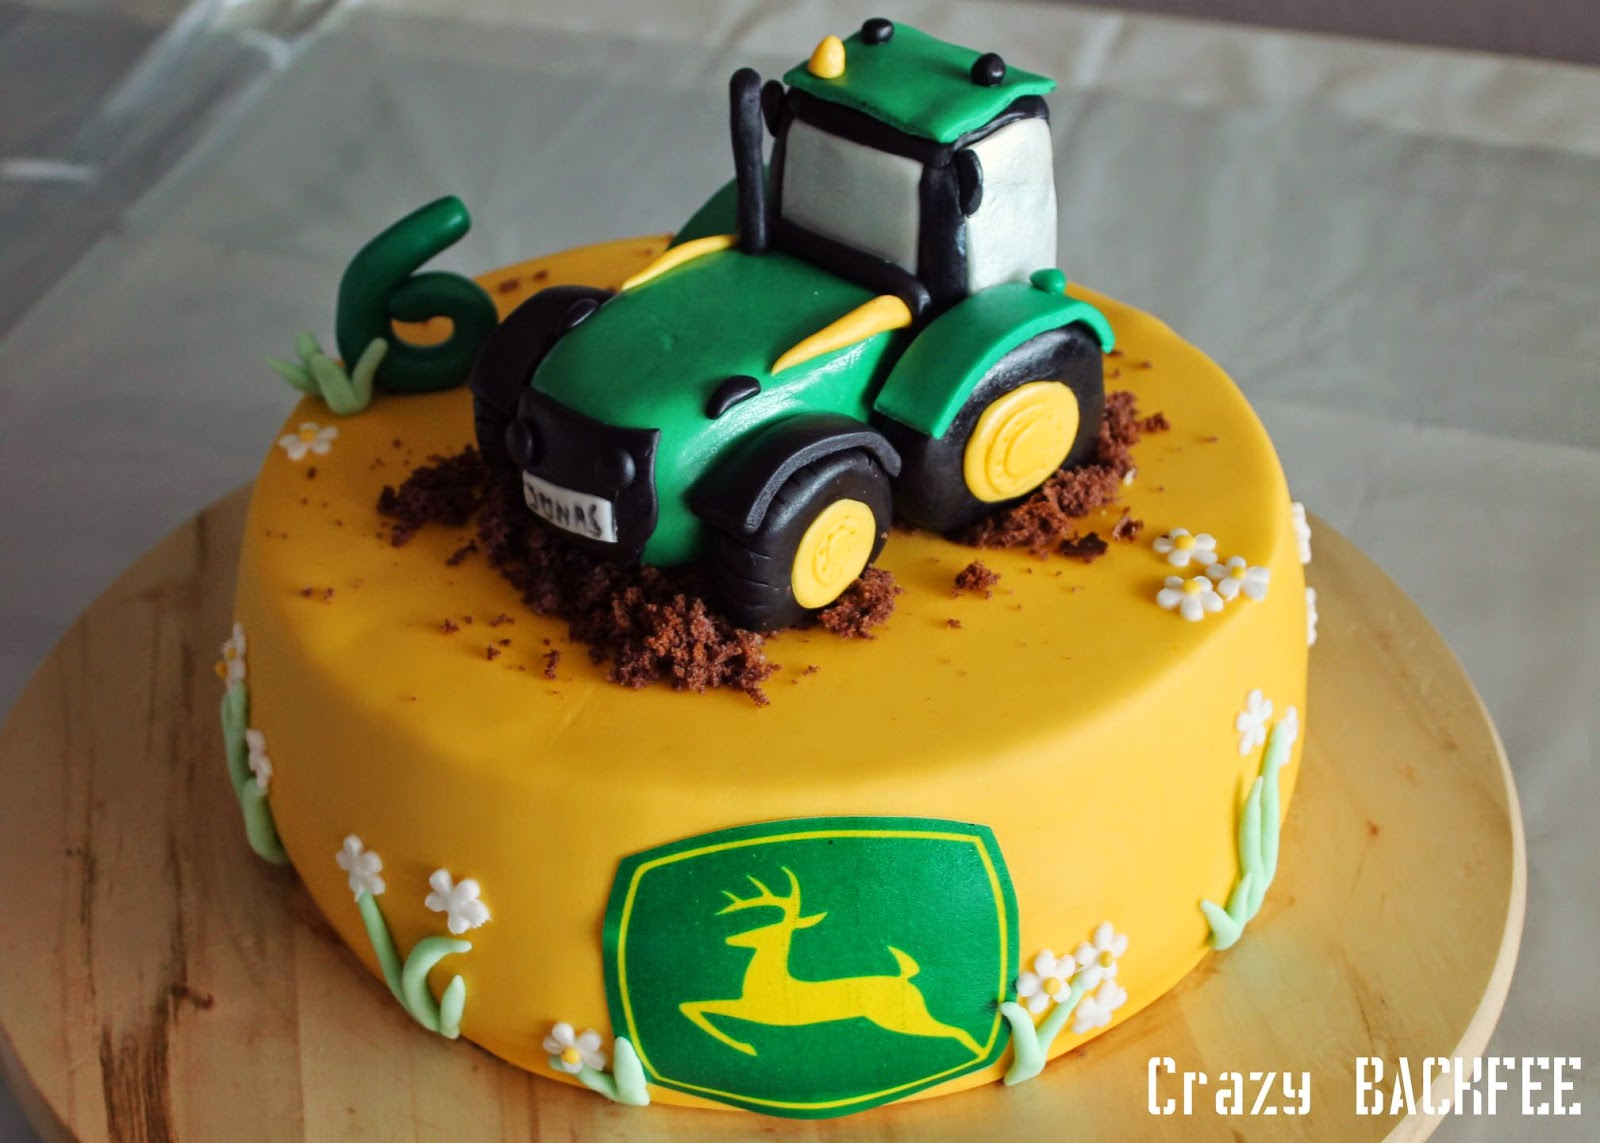 Bettwäsche Kinder Riegel Crazy Backnoé John Deere Torte